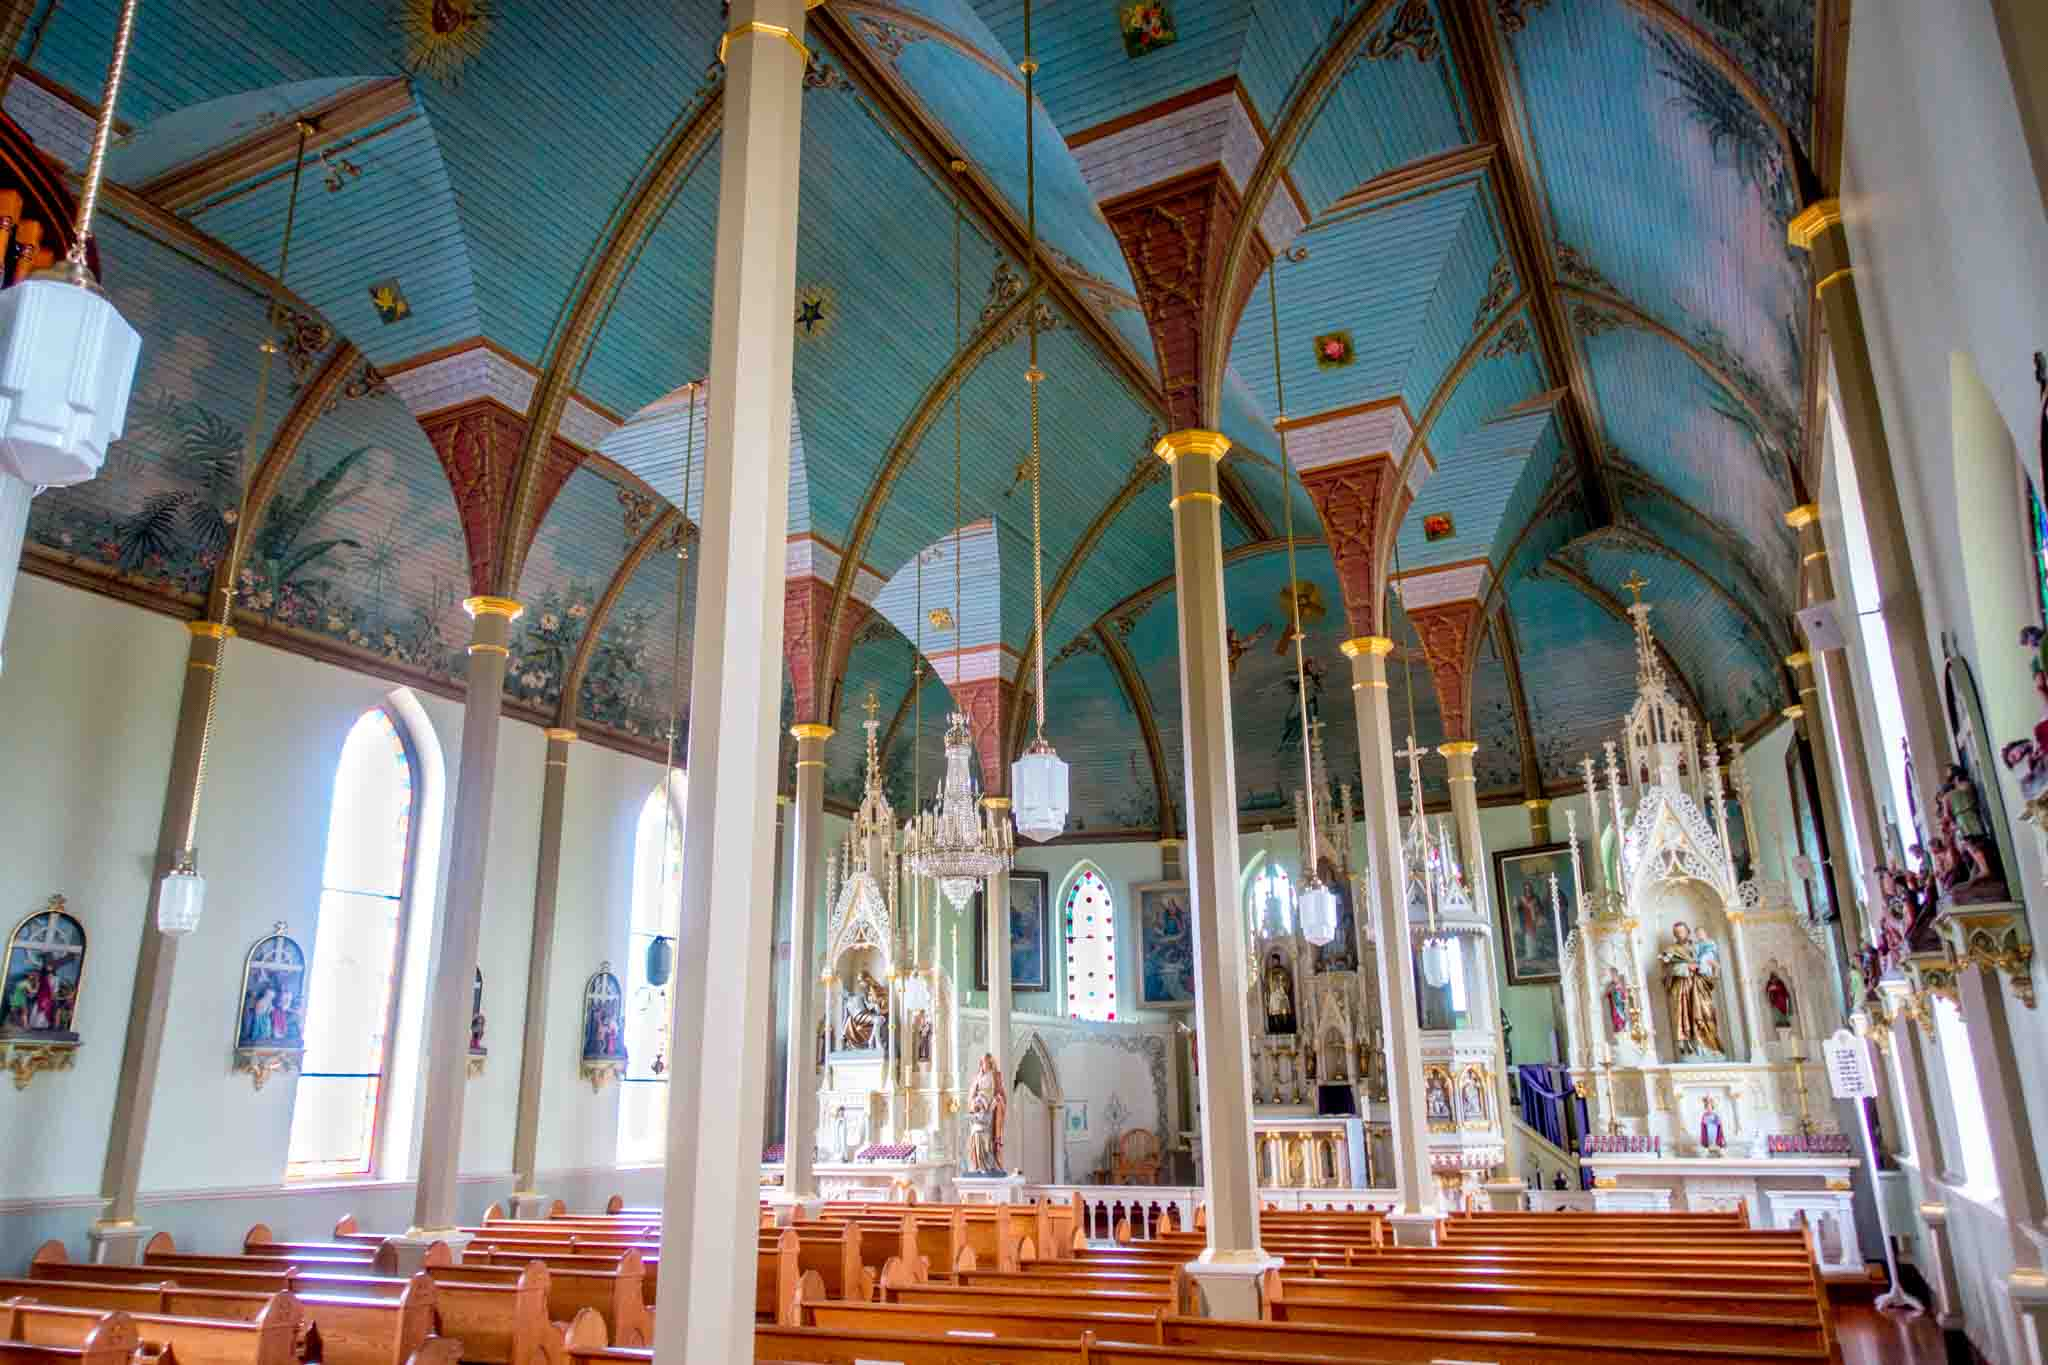 Sanctuary with a turquoise ceiling